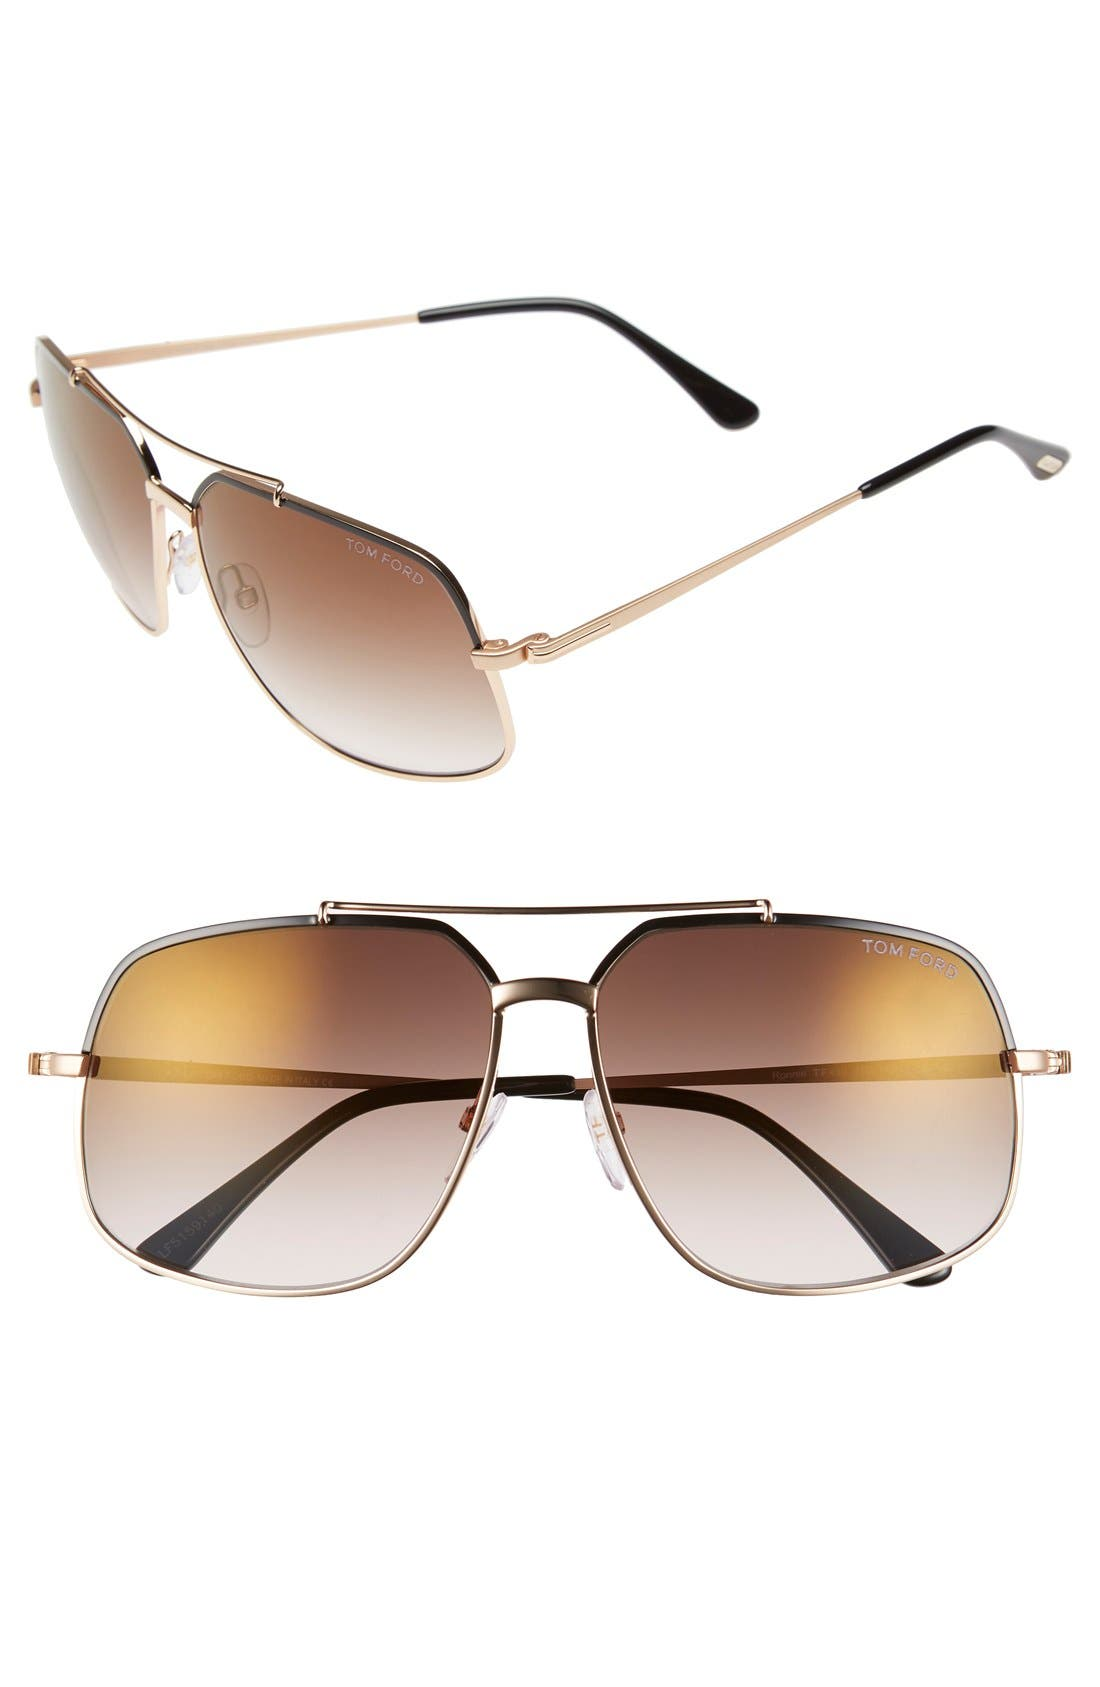 Alternate Image 1 Selected - Tom Ford 'Ronnie' 60mm Aviator Sunglasses